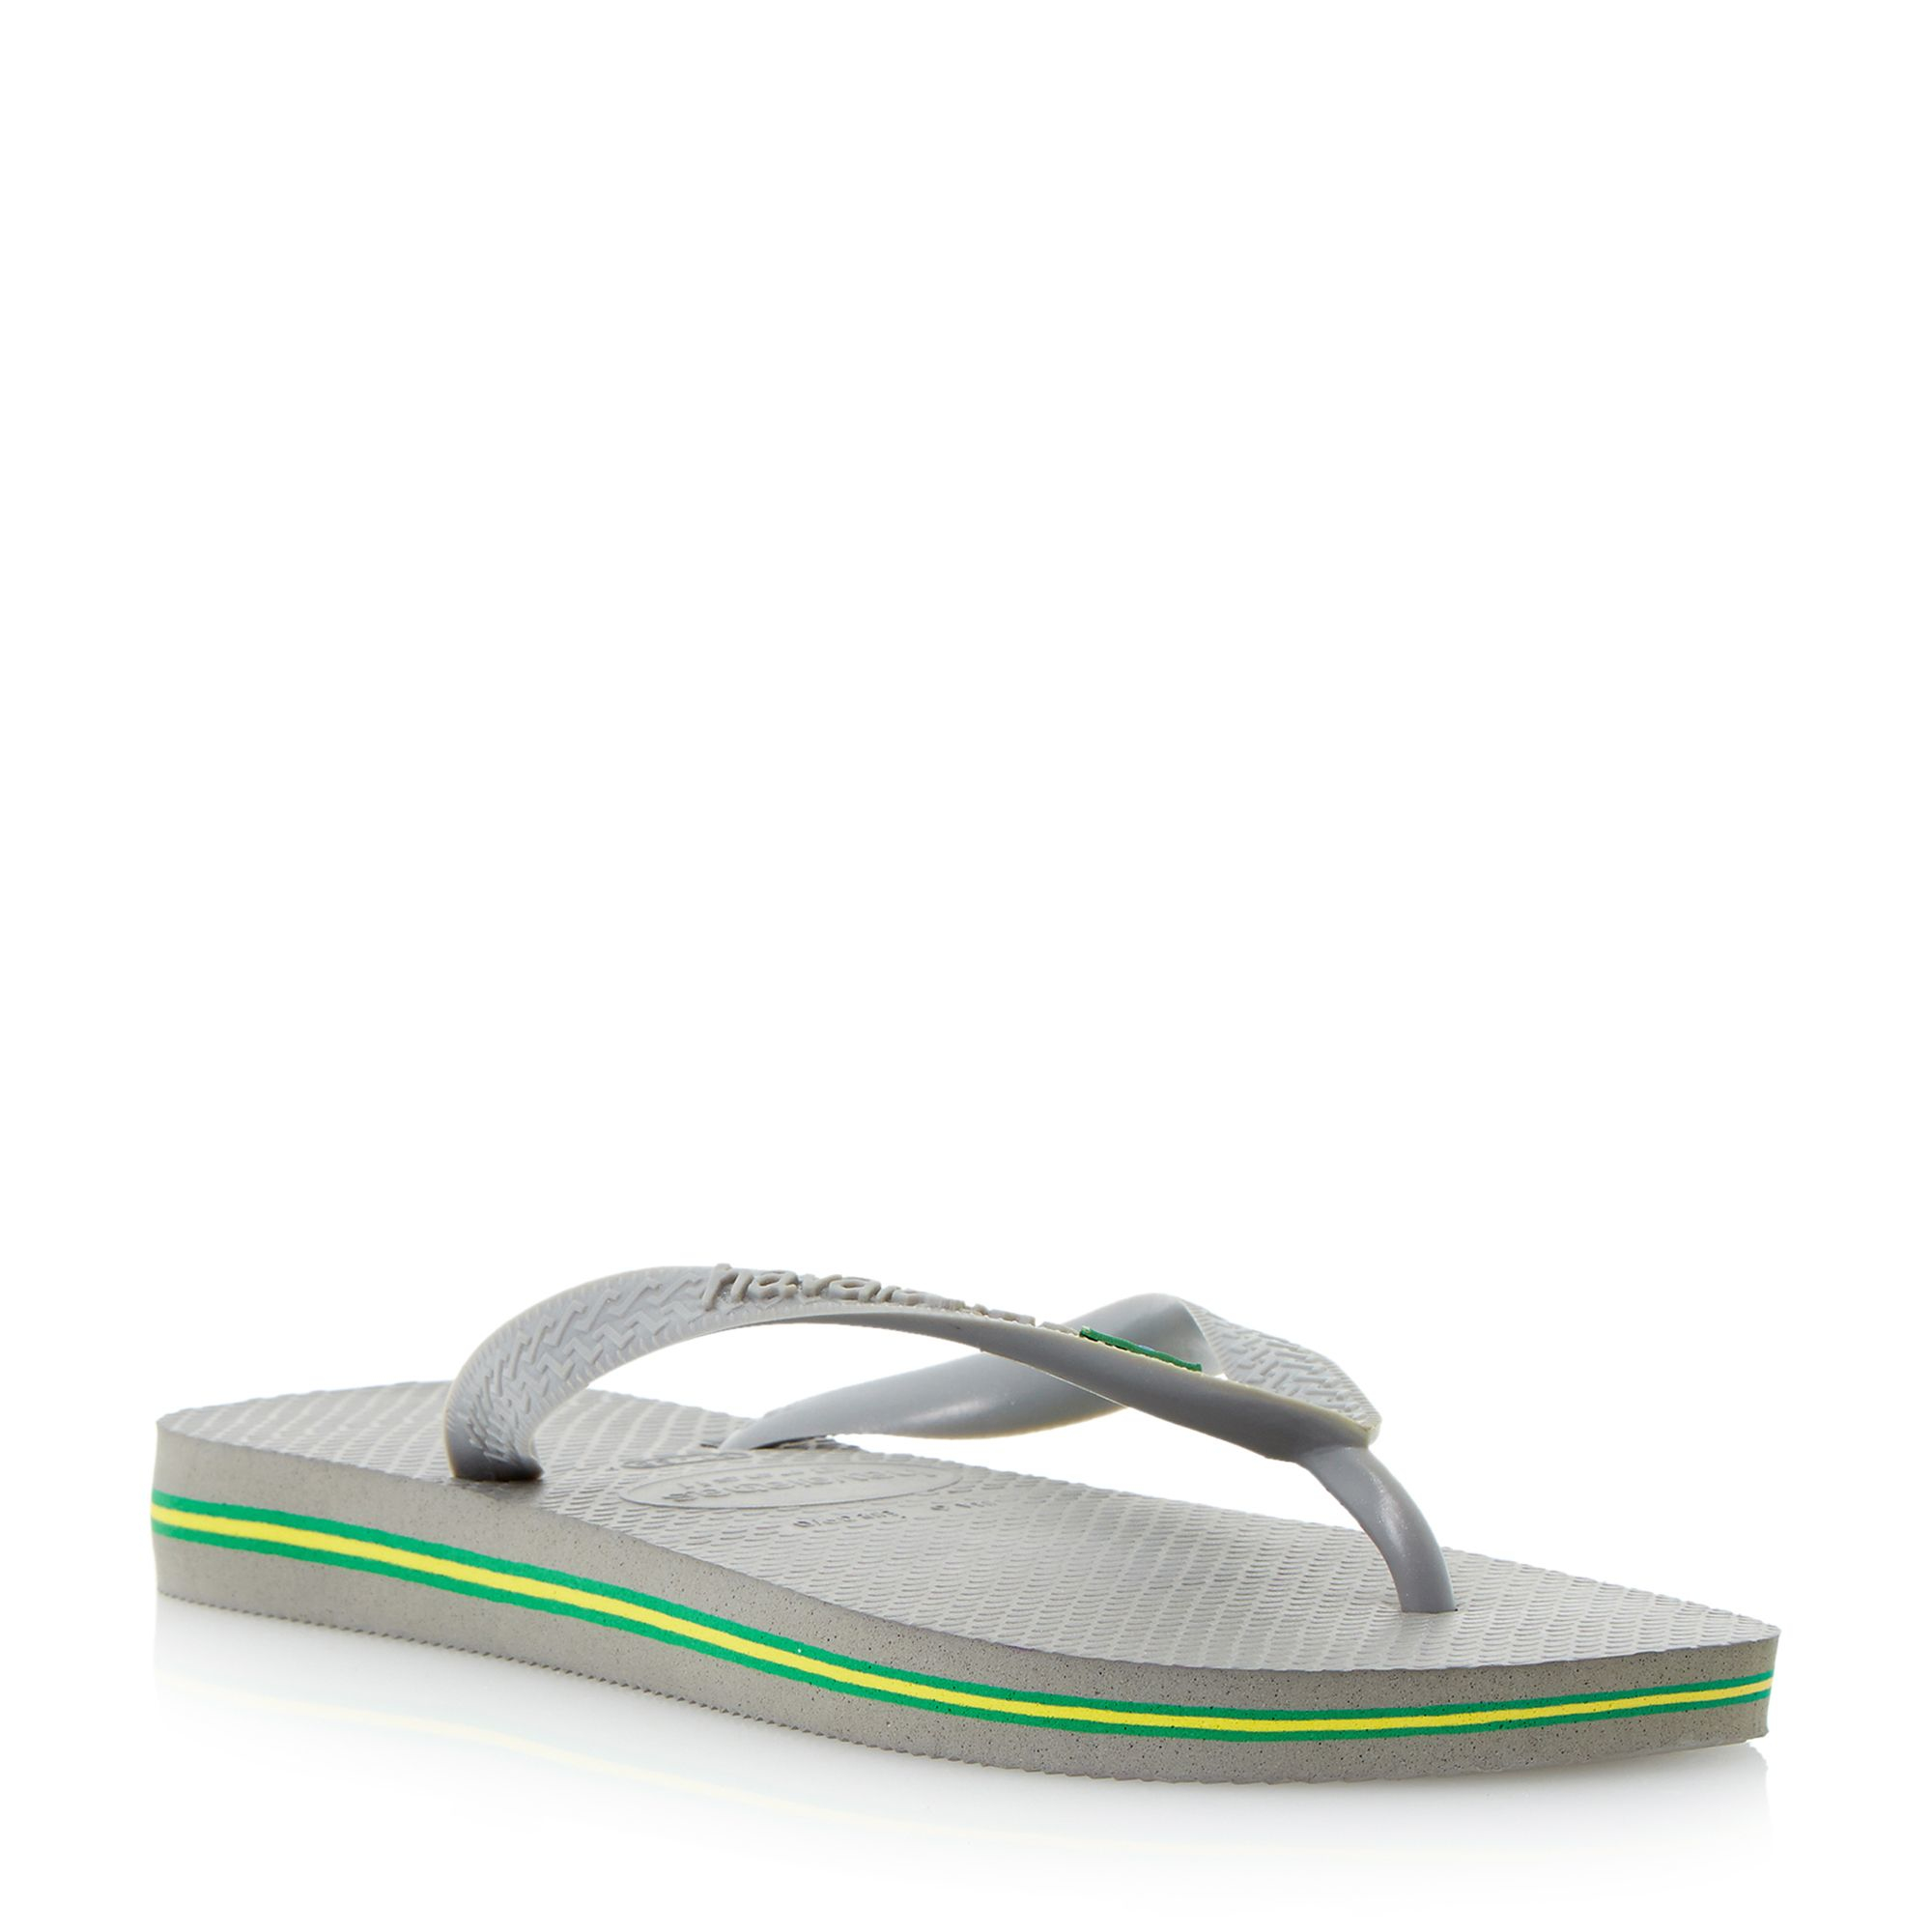 havaianas classic flag slip on casual flip flops in gray